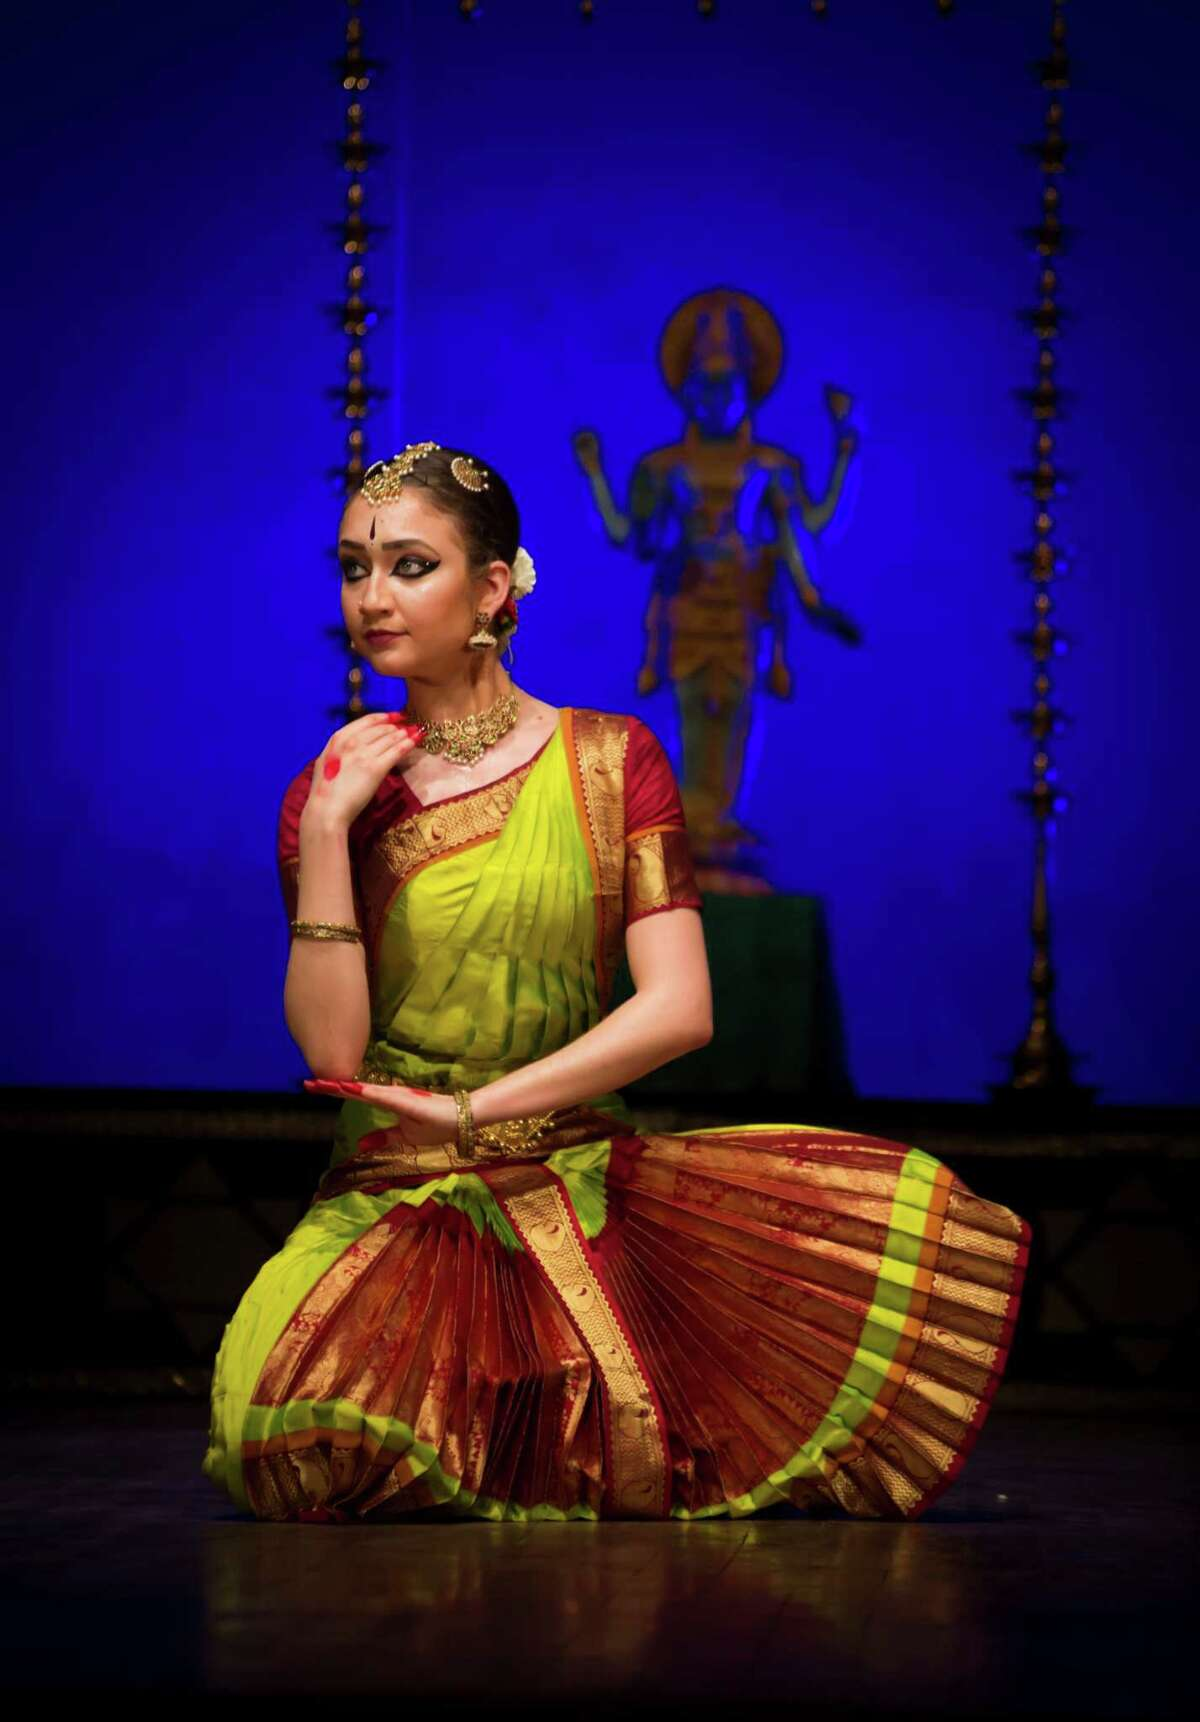 Sophia Salingaros dances during the Rasa Sanje Dance Festival in Bangalore, India, in December 2019. She received much of her early training in Indian Dance in San Antonio.